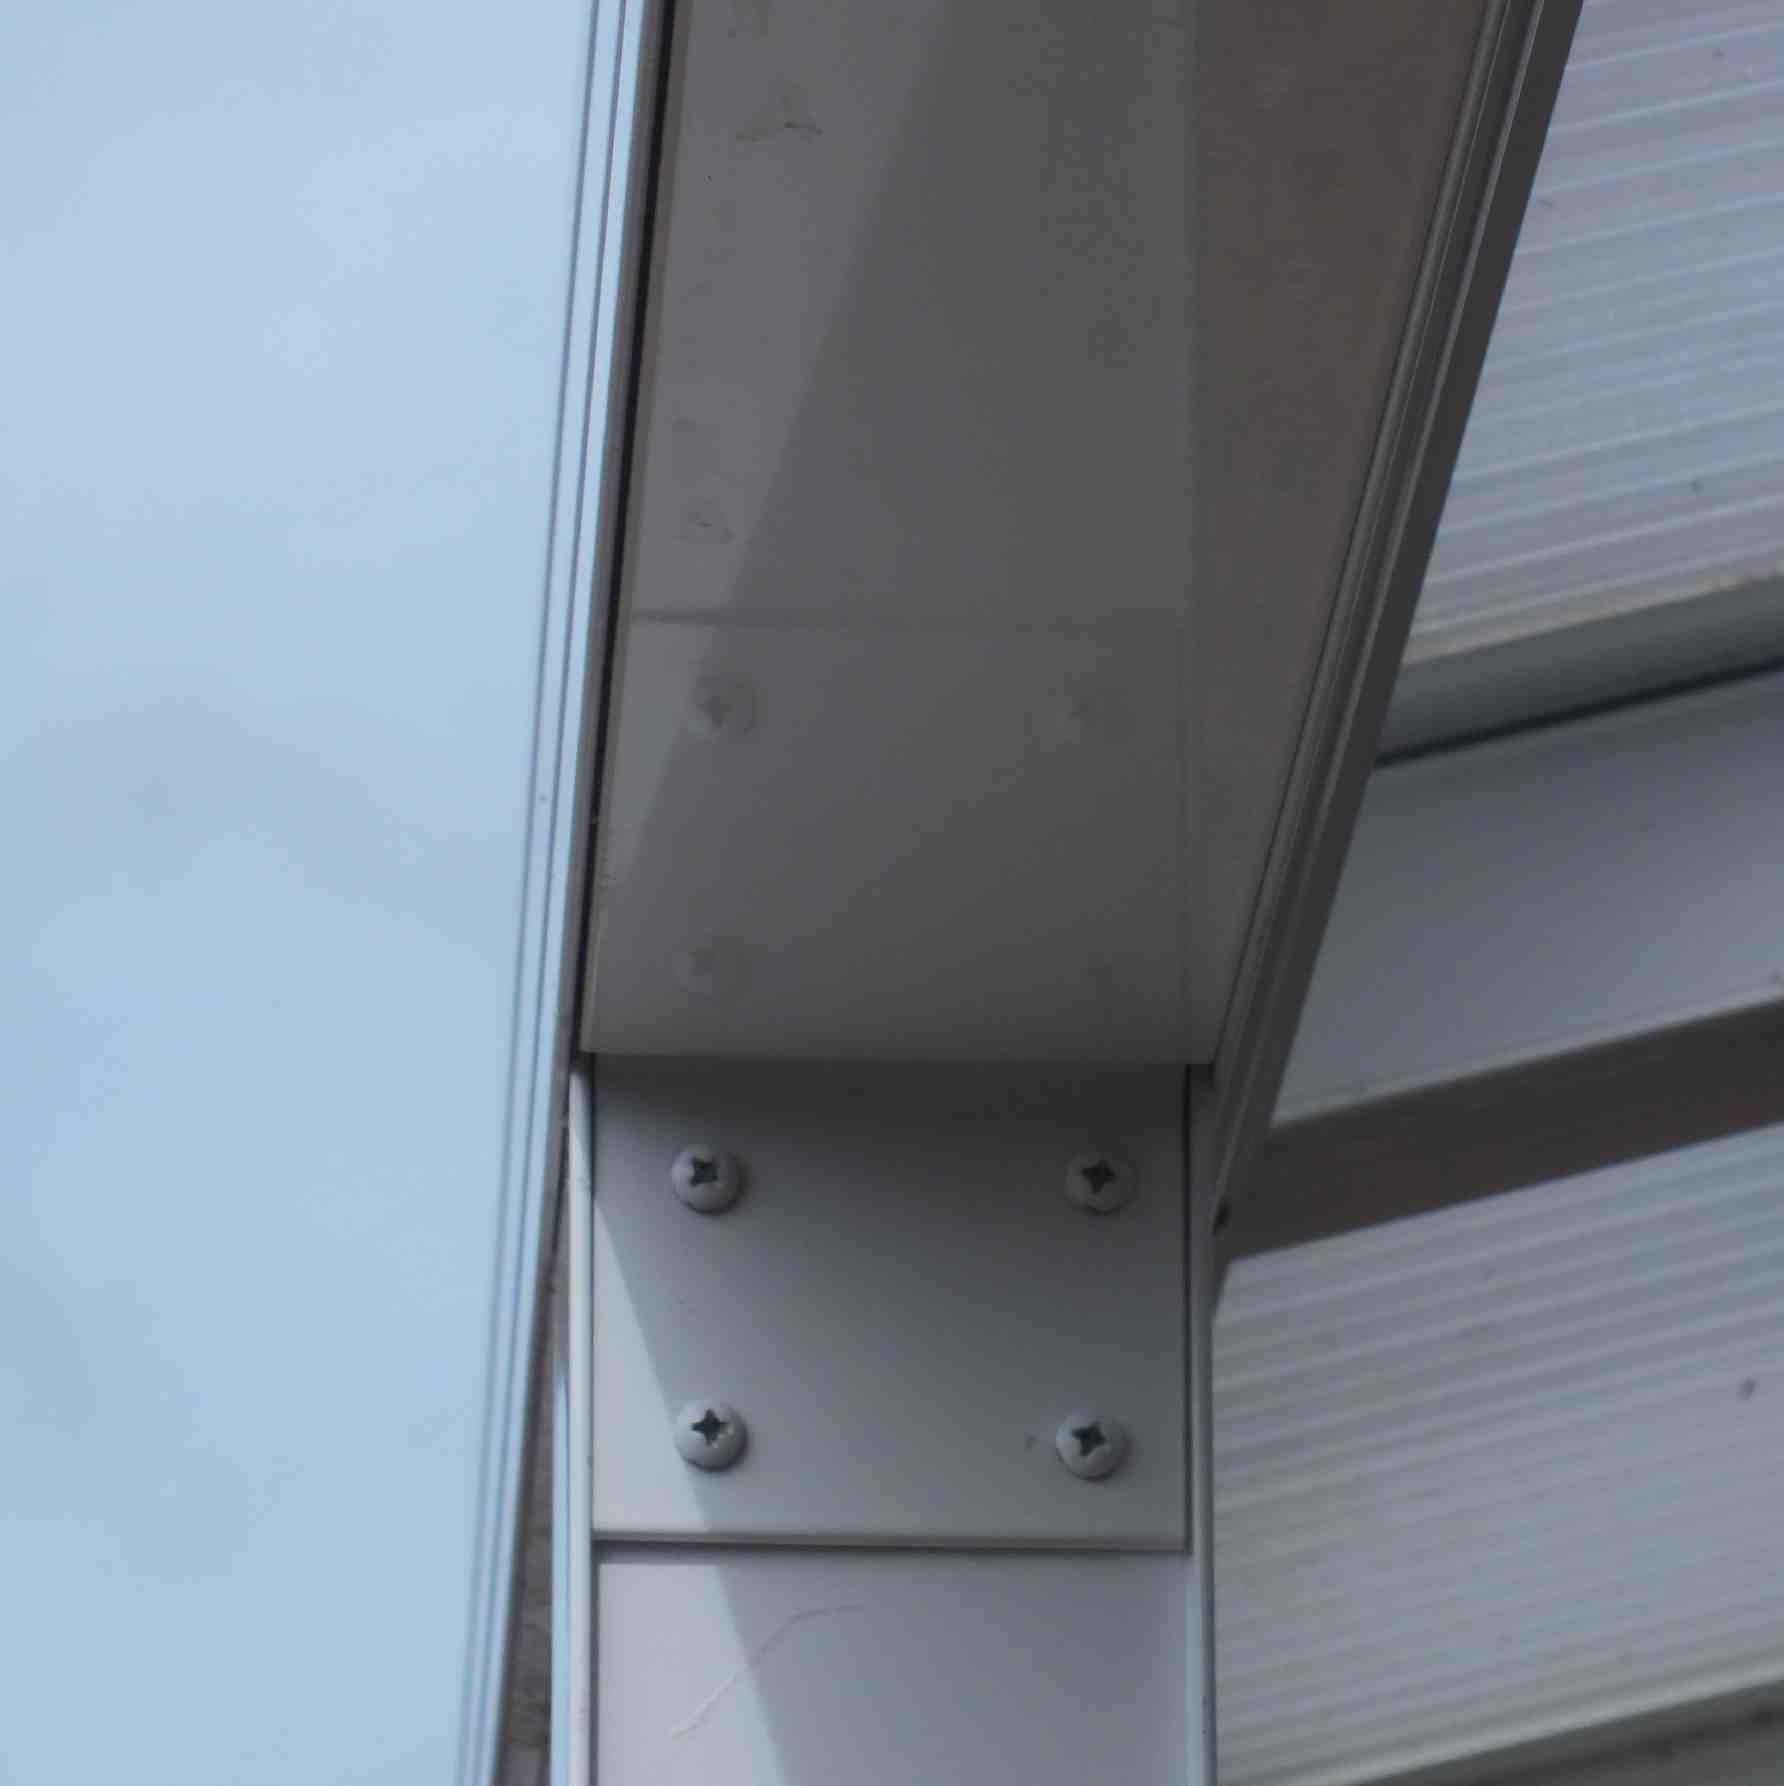 Affordable Omega Verandah with 16mm Polycarbonate Glazing - 10.6m (W) x 2.0m (P), (5) Supporting Posts